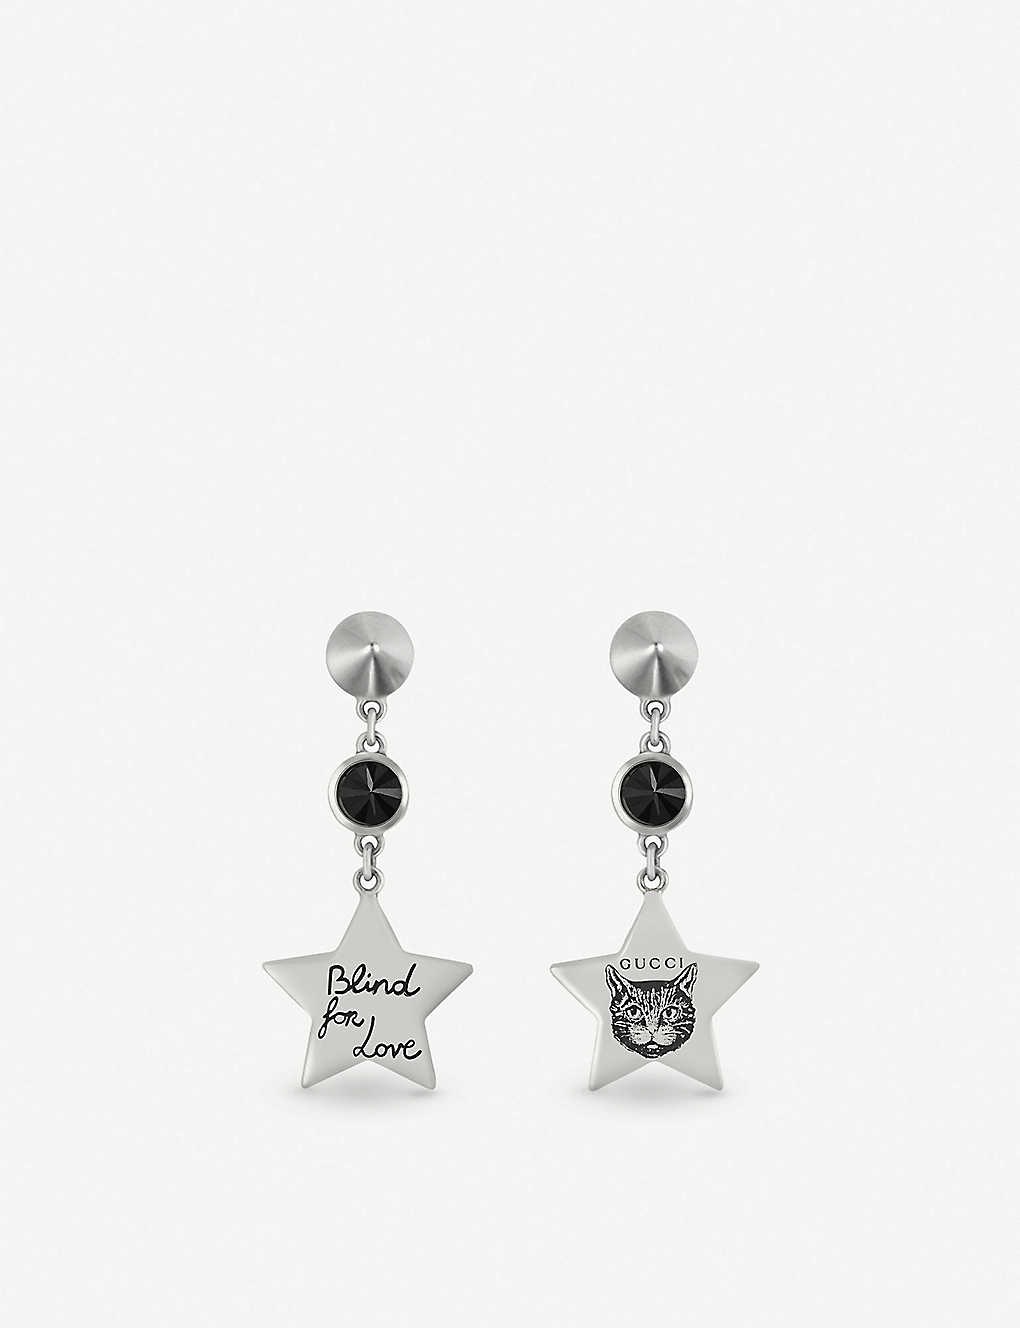 7b5acbbd7 Blind for Love star-shaped sterling silver and black spinel earrings ...